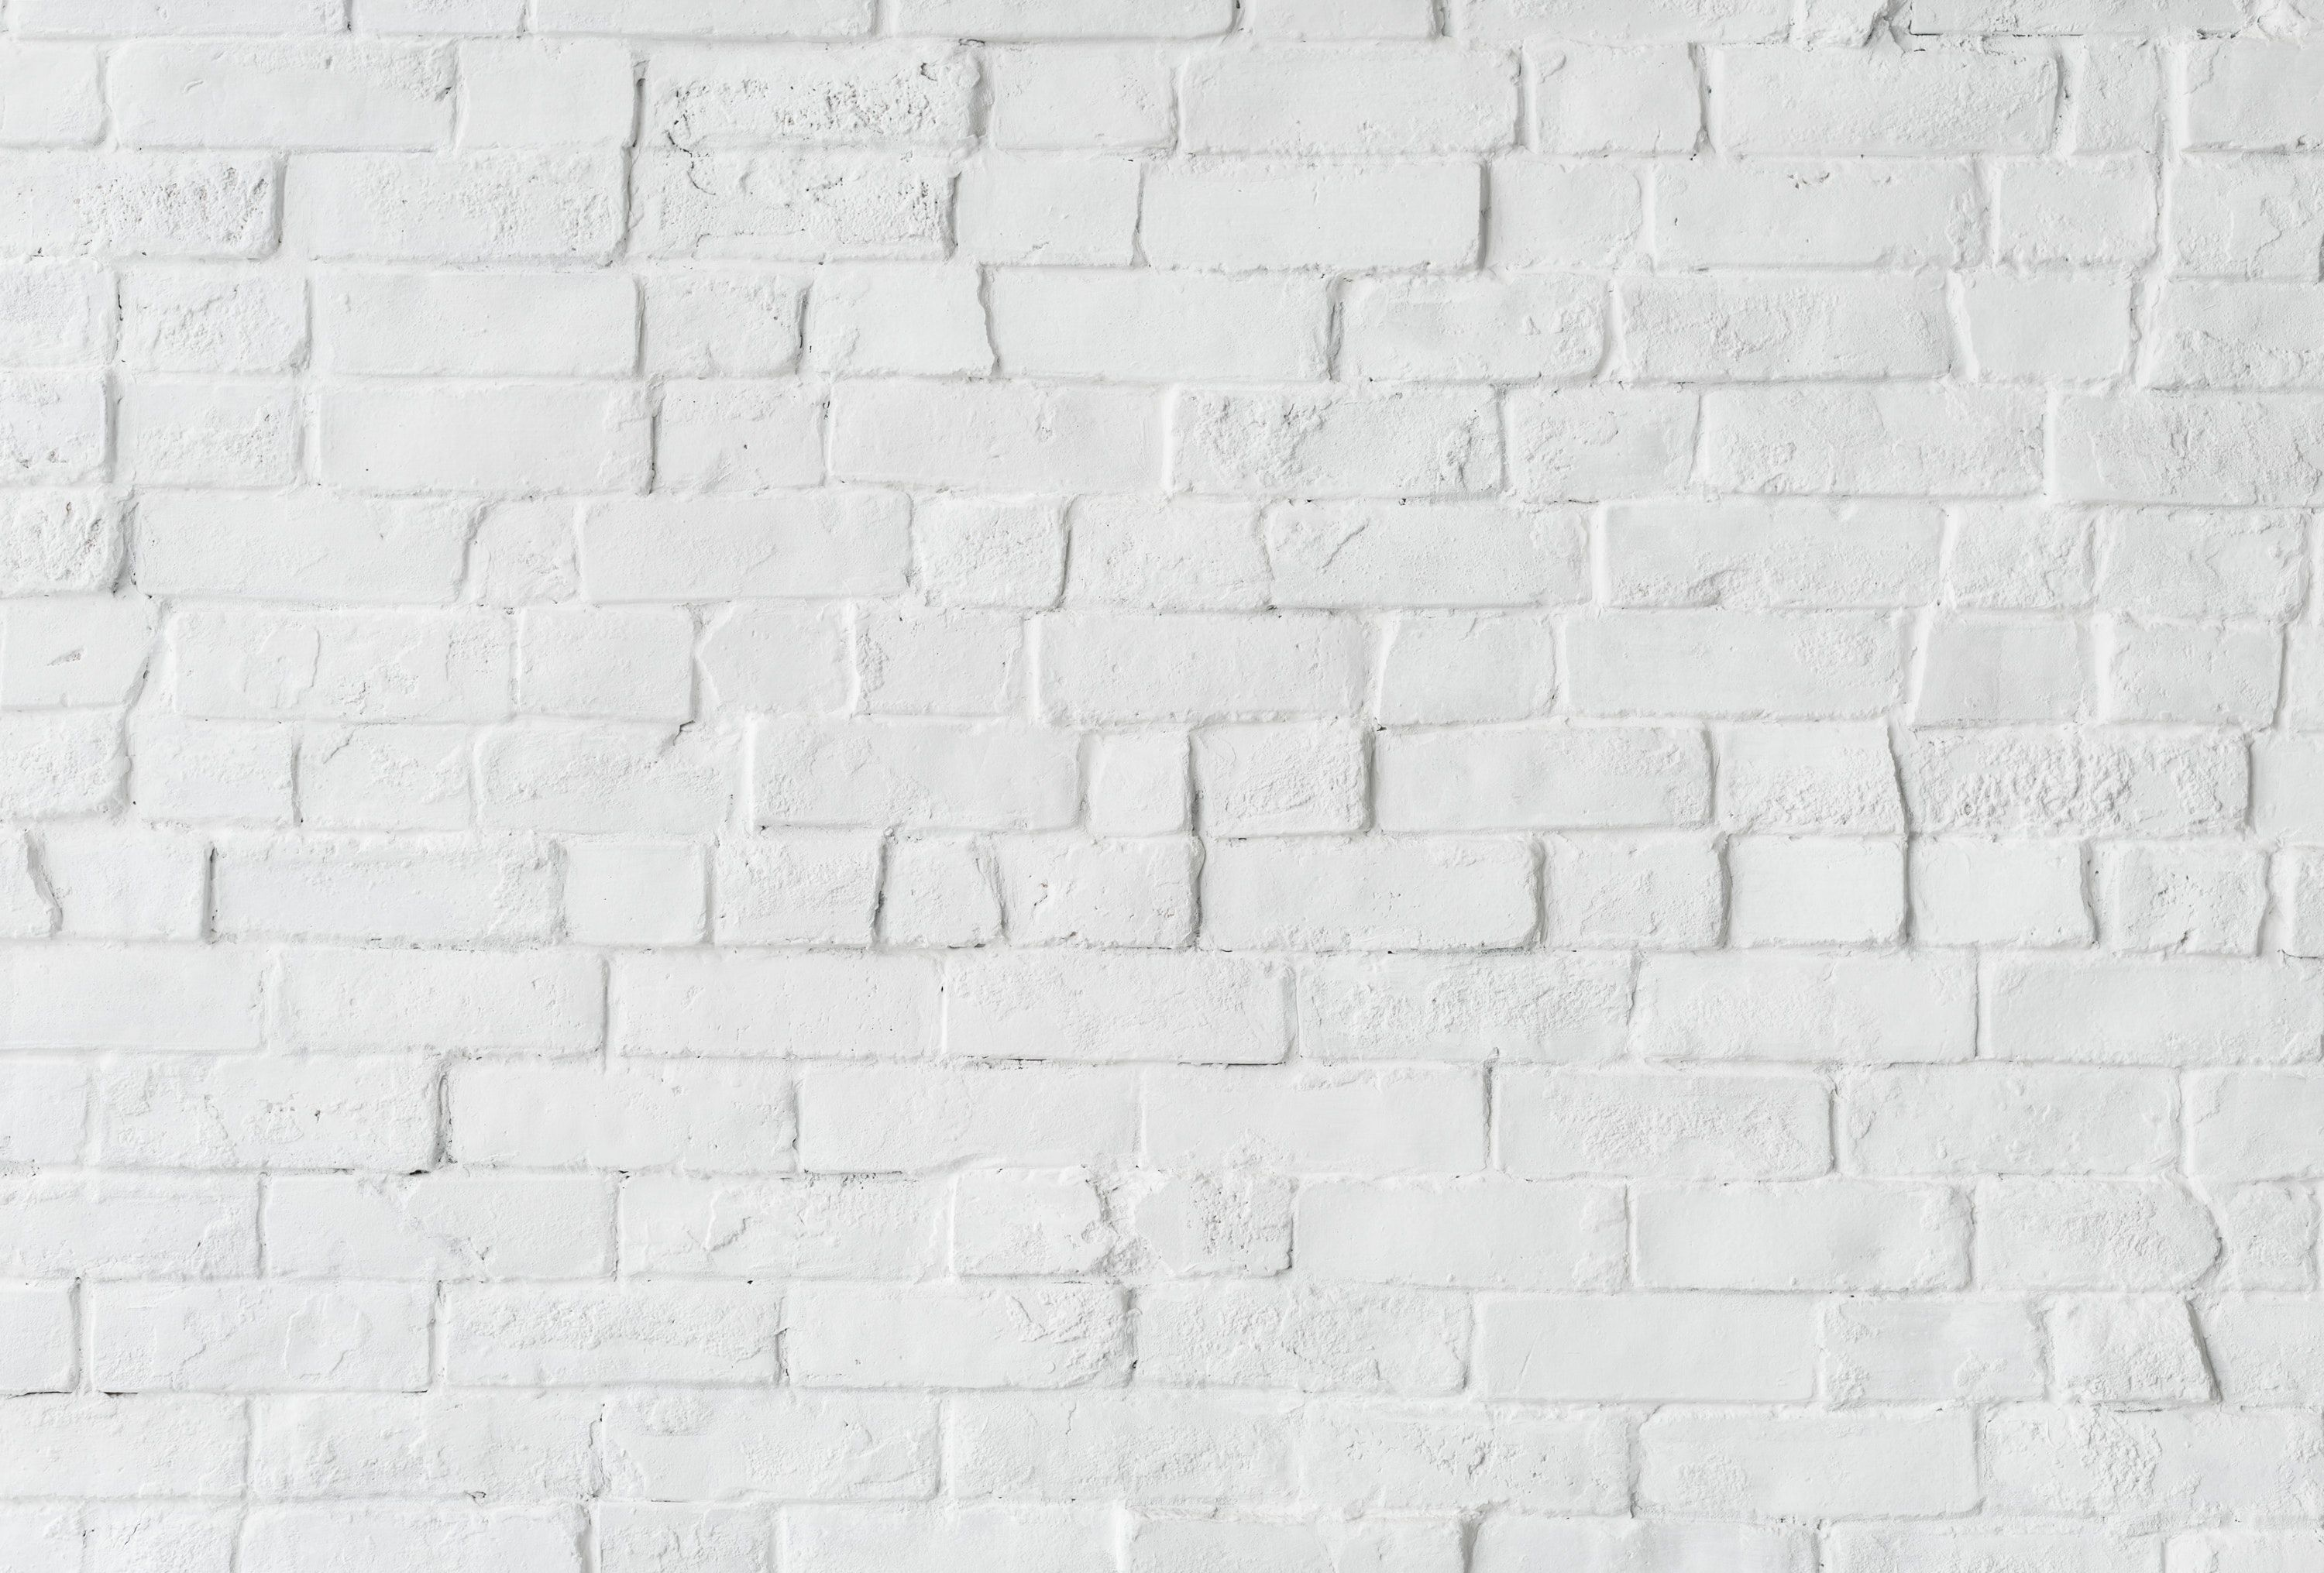 3 Quick Tips For Digital Literacy Brick wall background